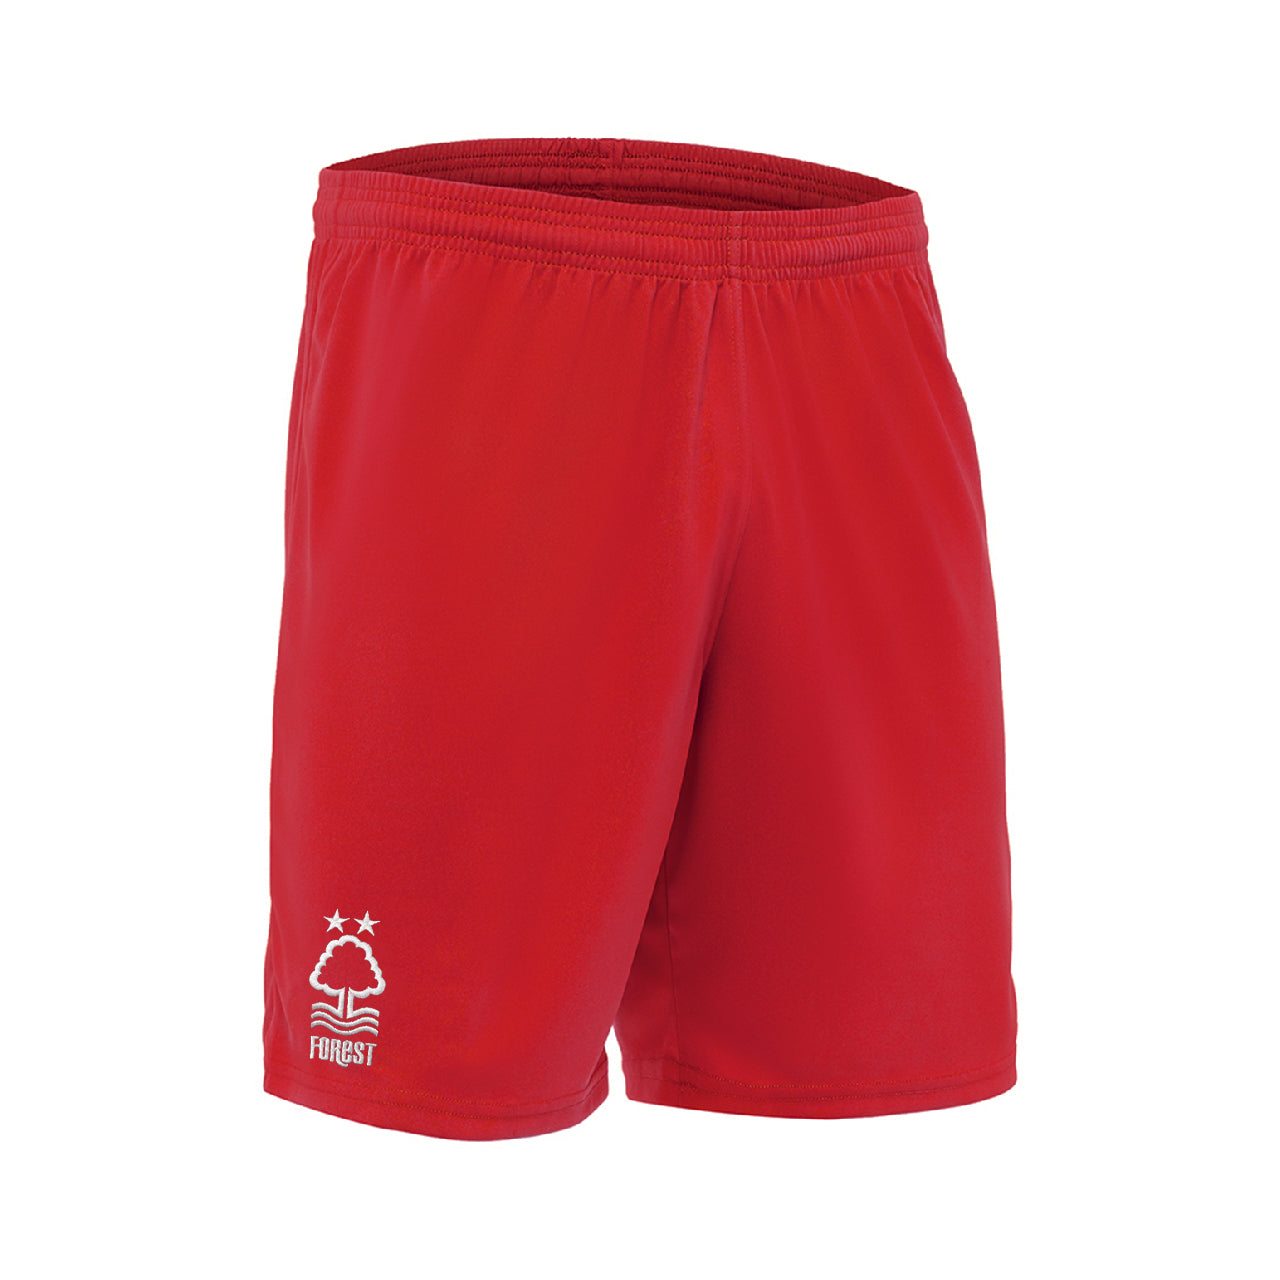 NFFC Junior Pre Season Shorts 2020/21